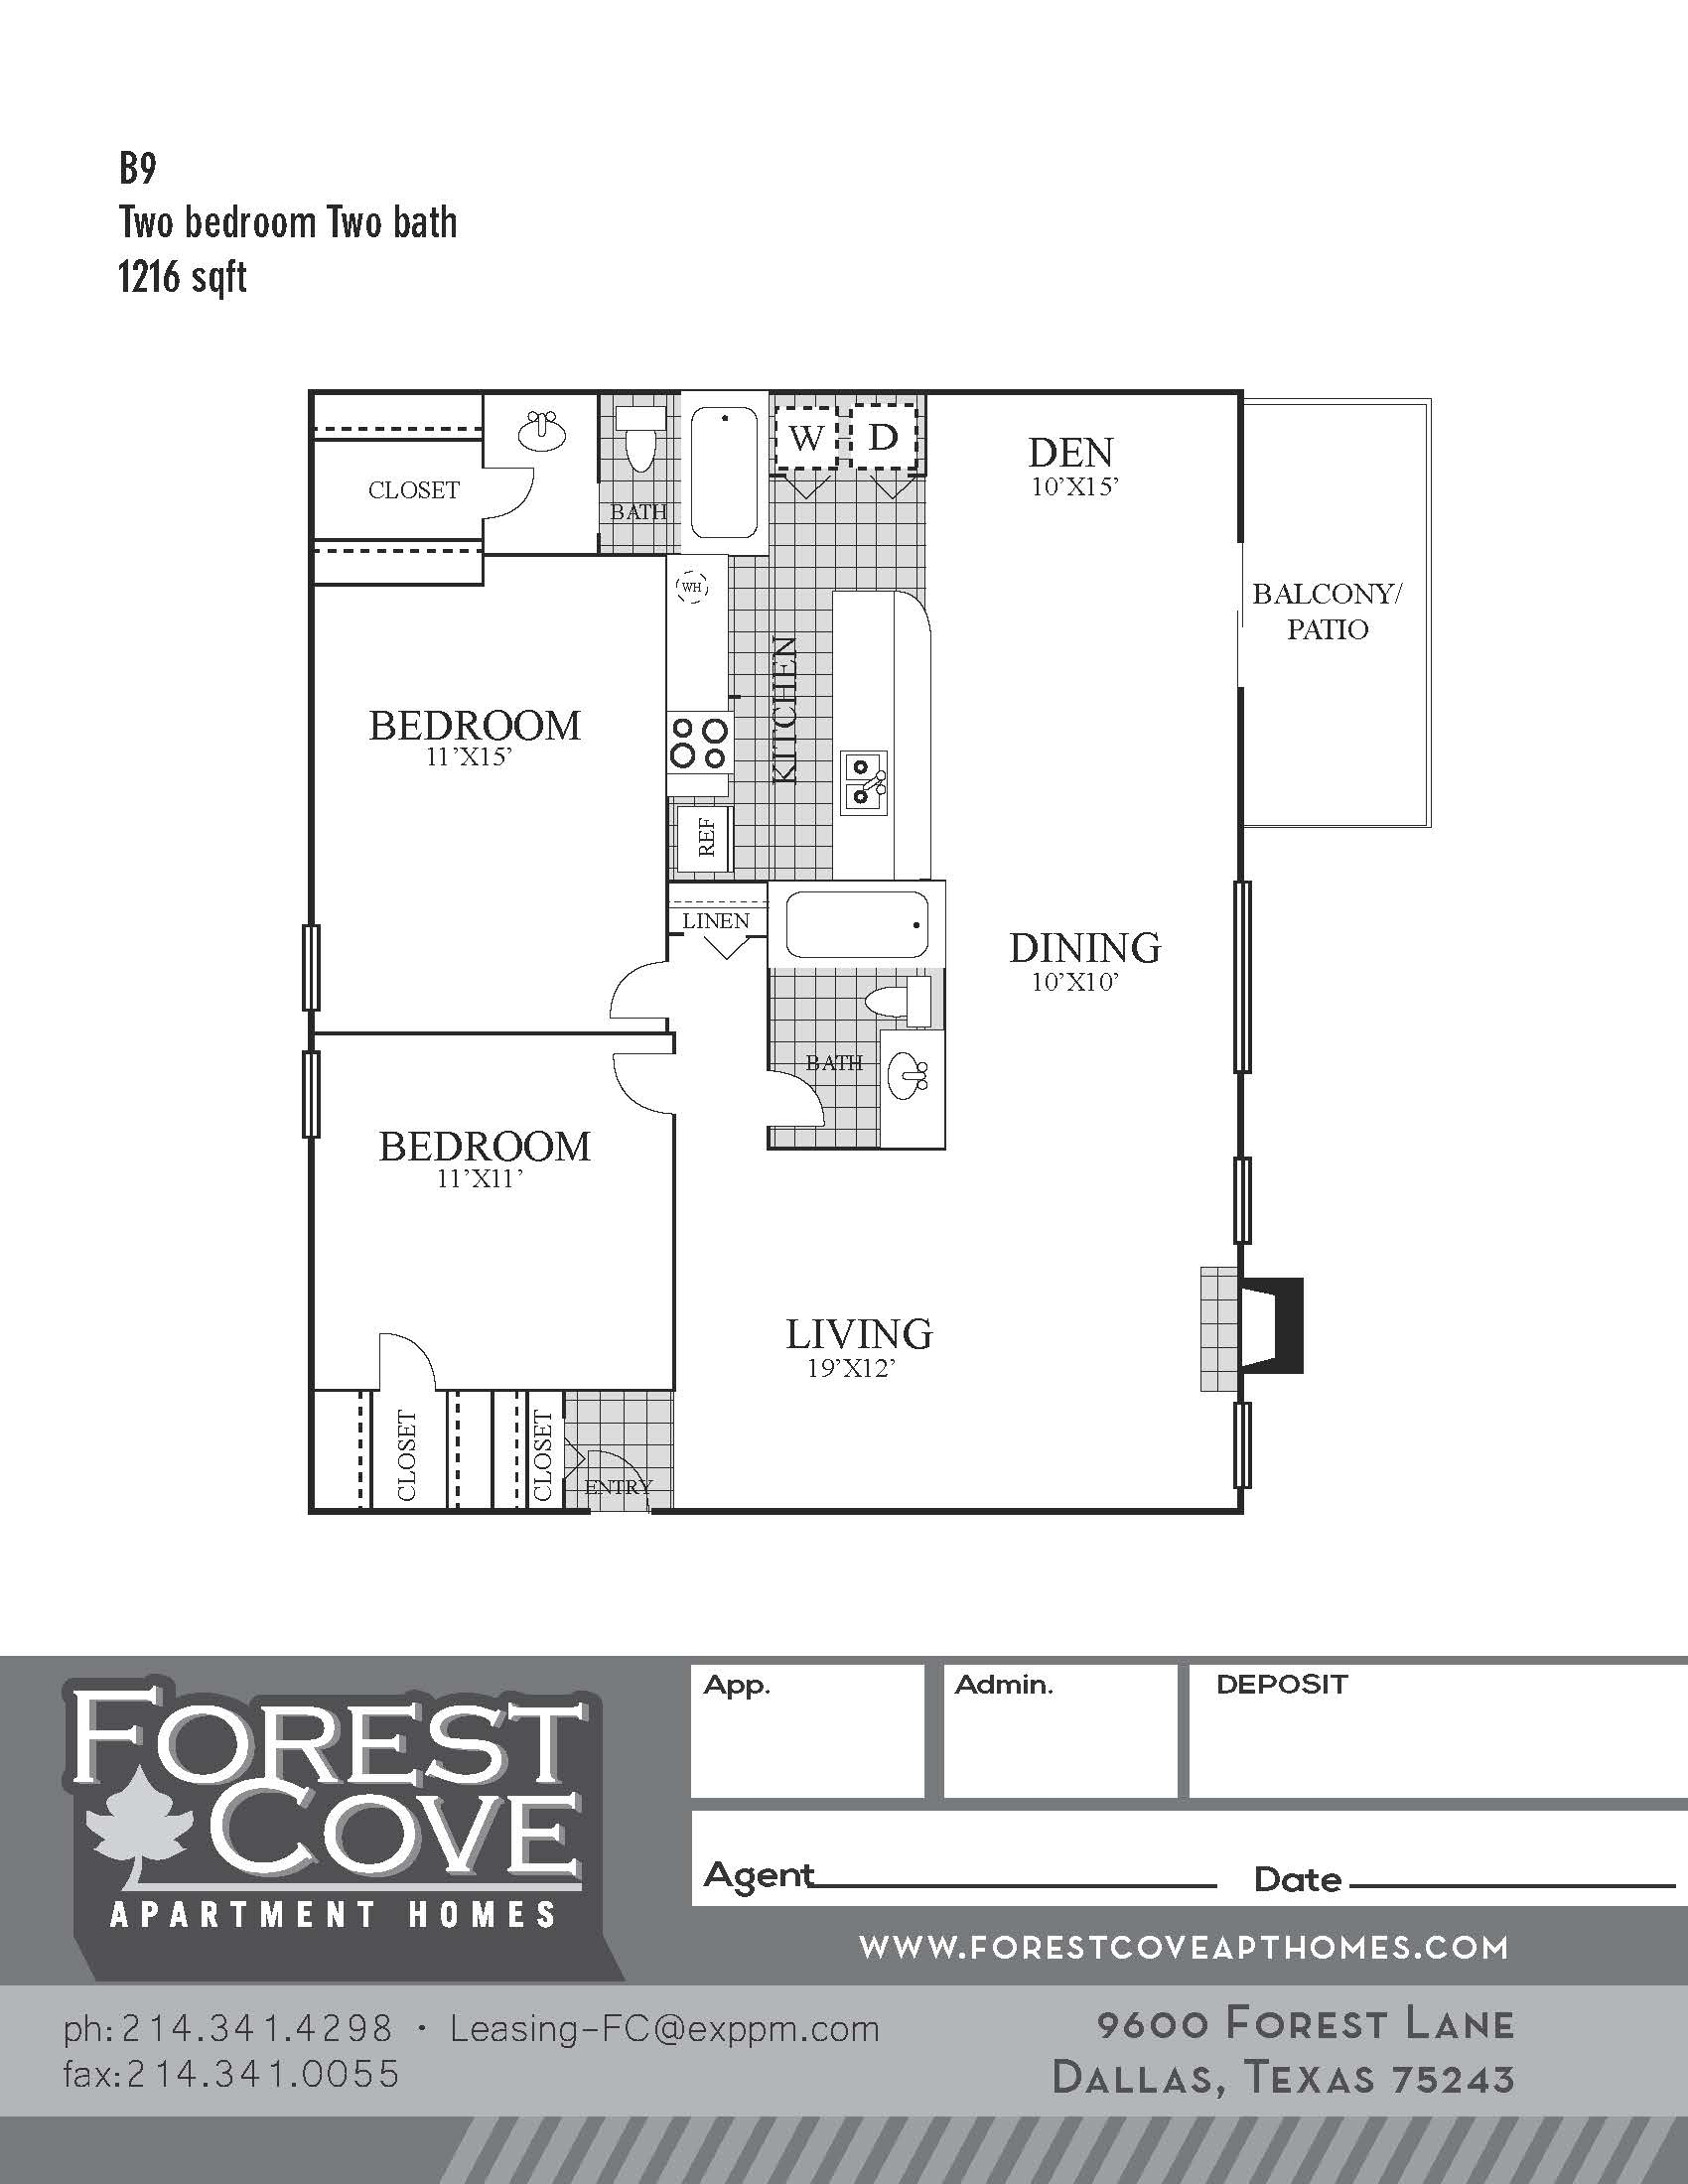 Forest Cove Apartments - Floorplan - B9